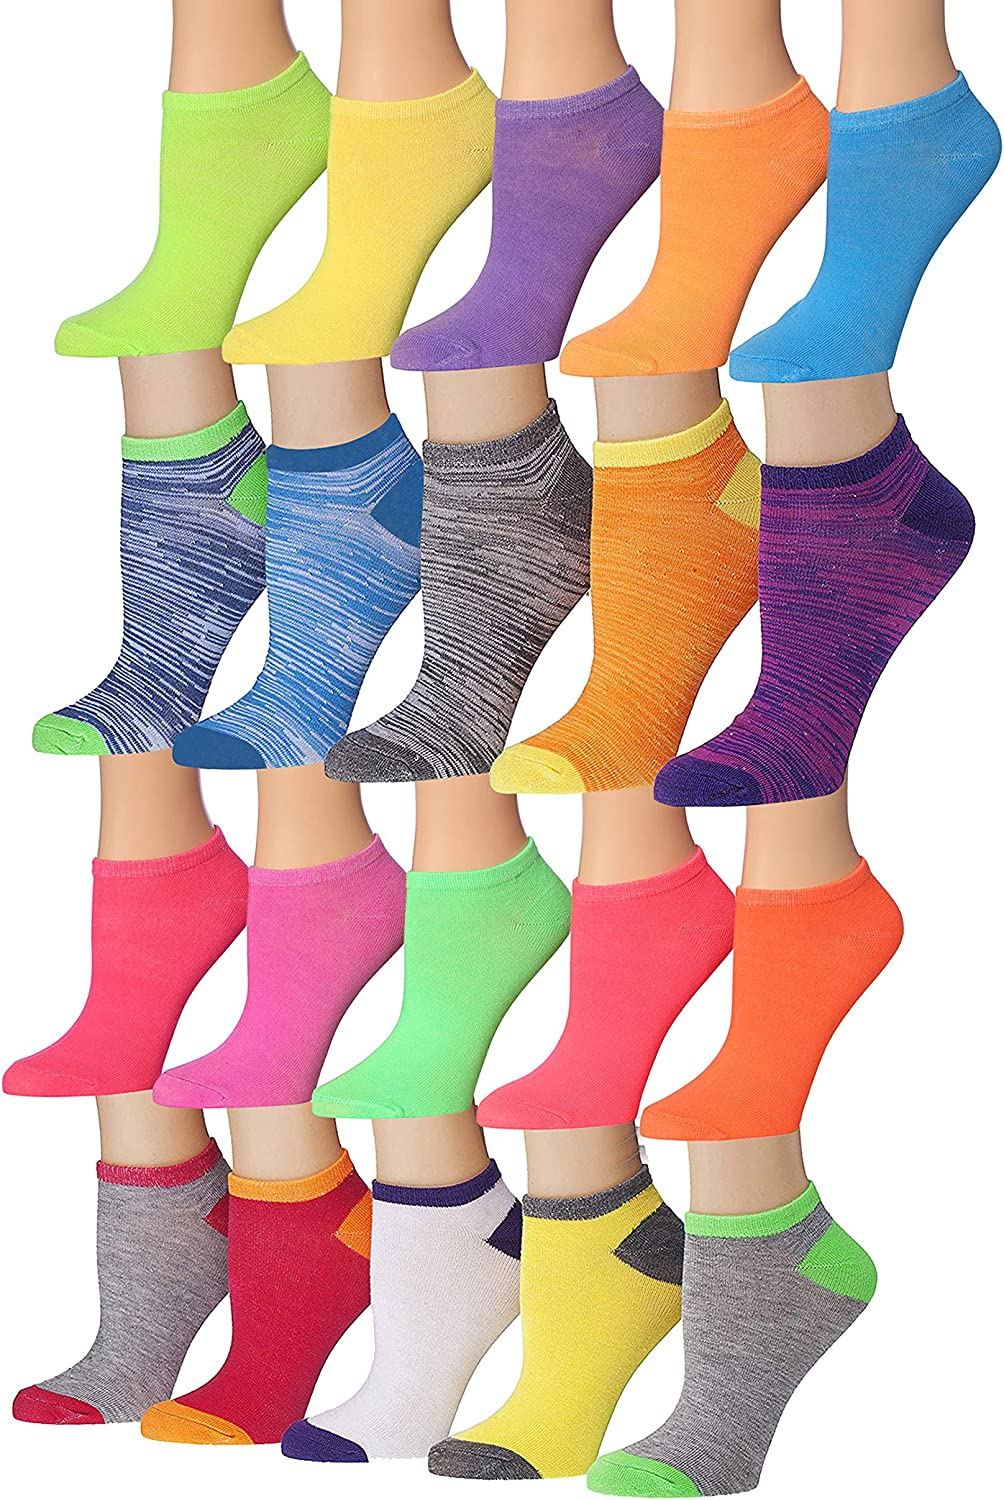 Tipi Toe Women's & Girls 20 Pairs Colorful Patterned Low Cut/No Show Socks